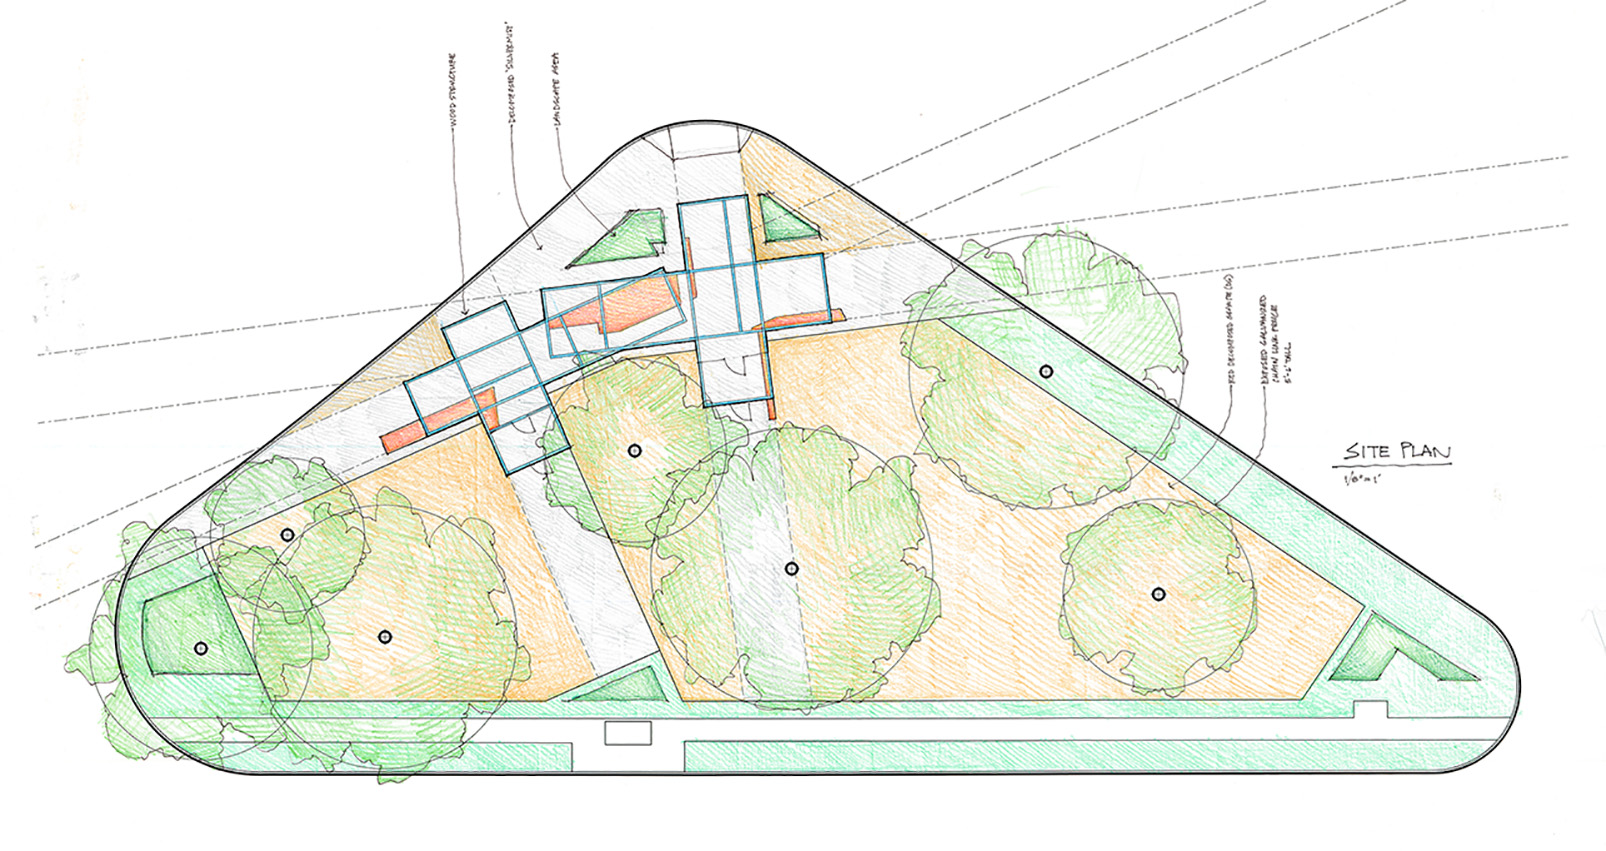 A future phase will include permanent structures, irrigation and additional landscaping. Design by Eric Gonzalez.